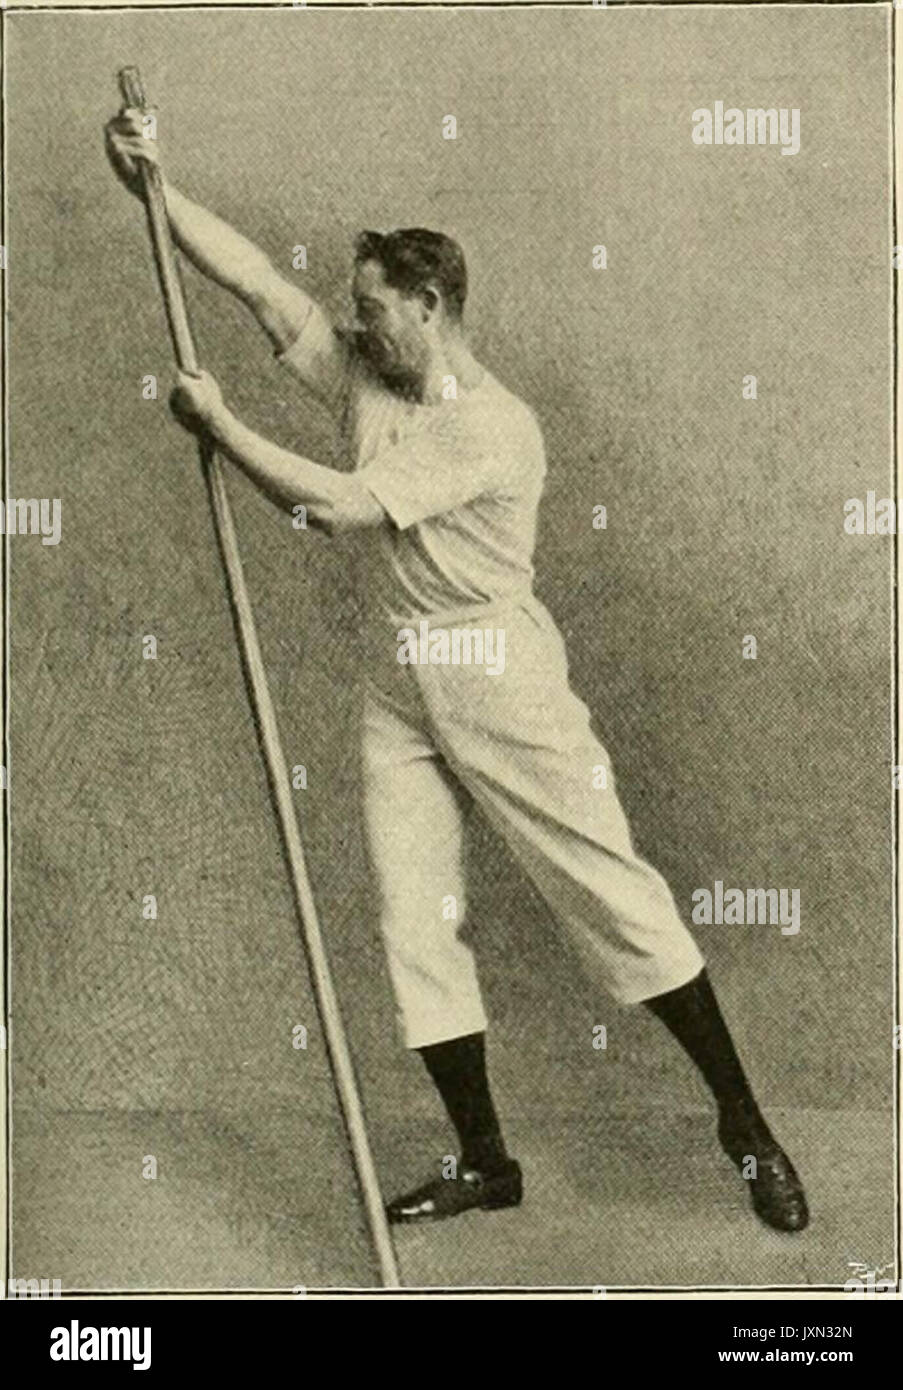 'The encyclopaedia of sport' (1897) - Stock Image